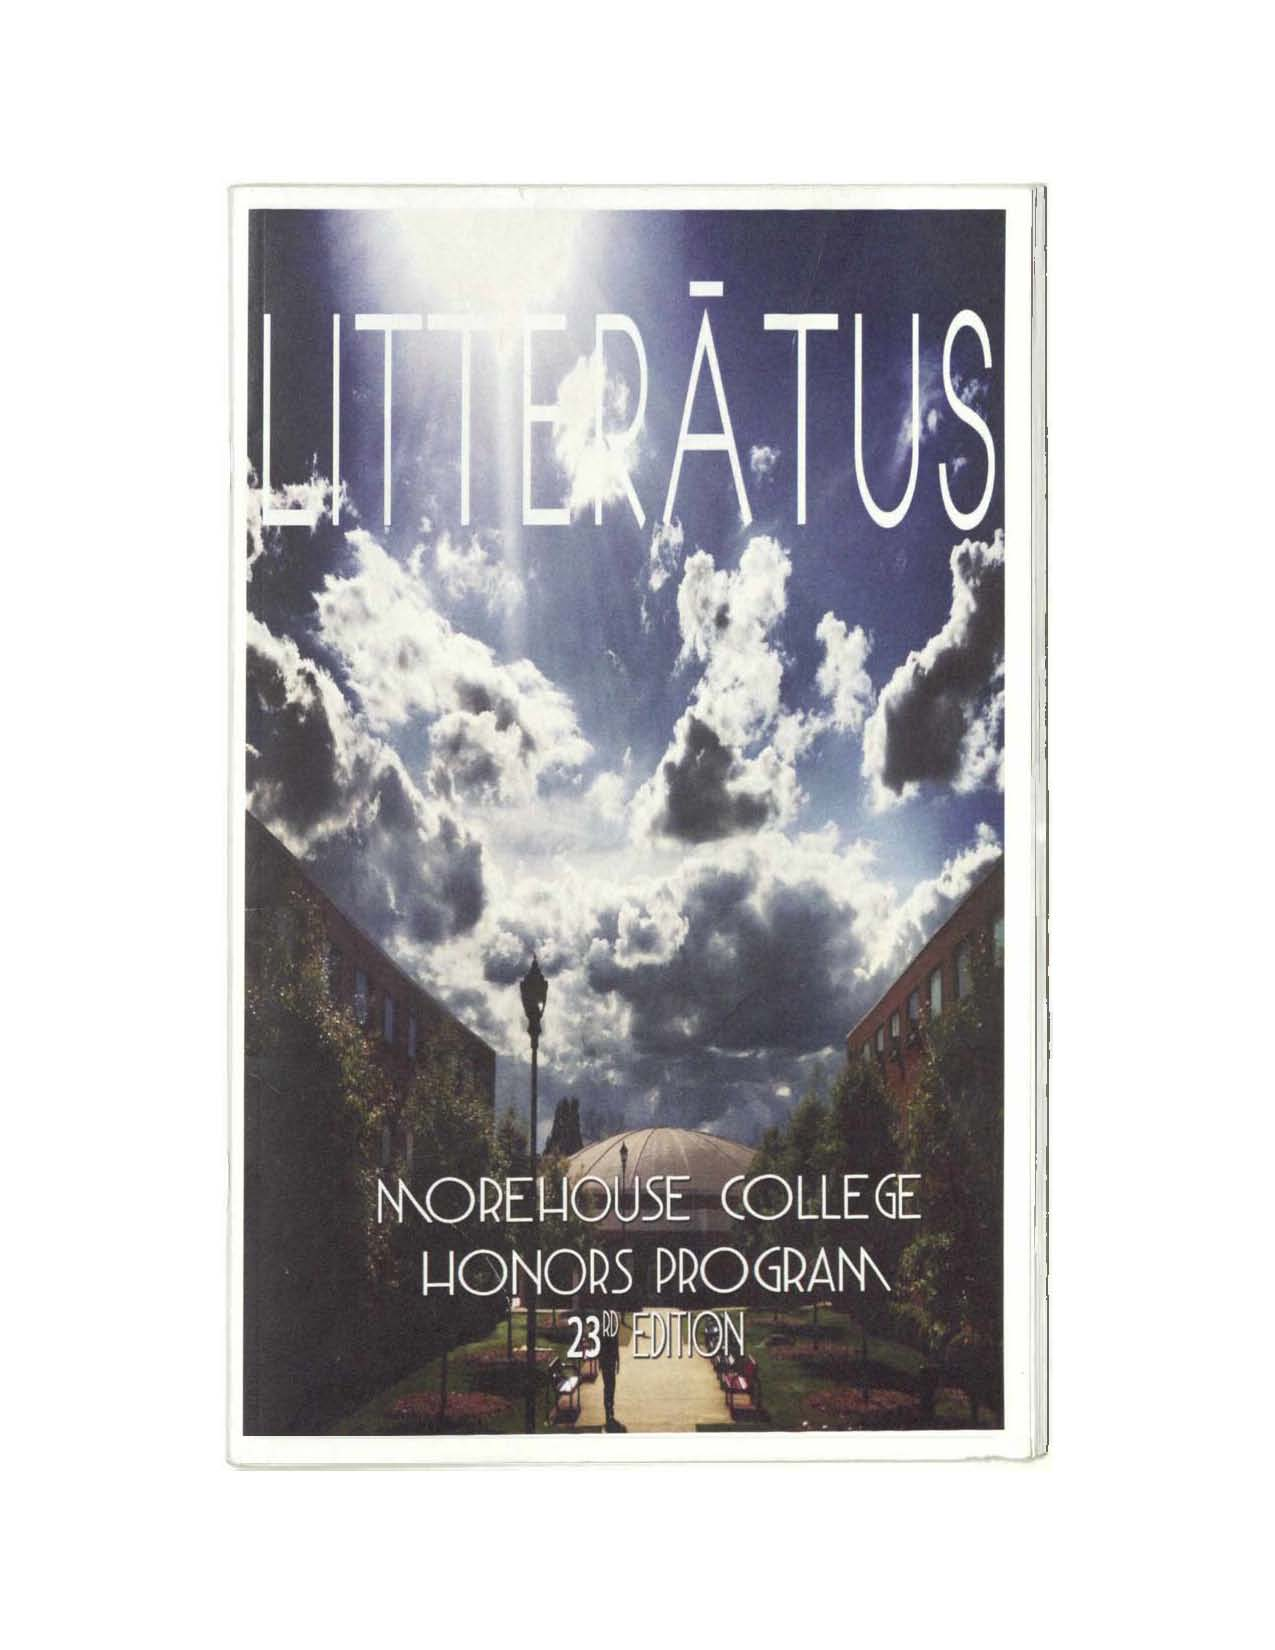 Litteratus 2013 Cover Image